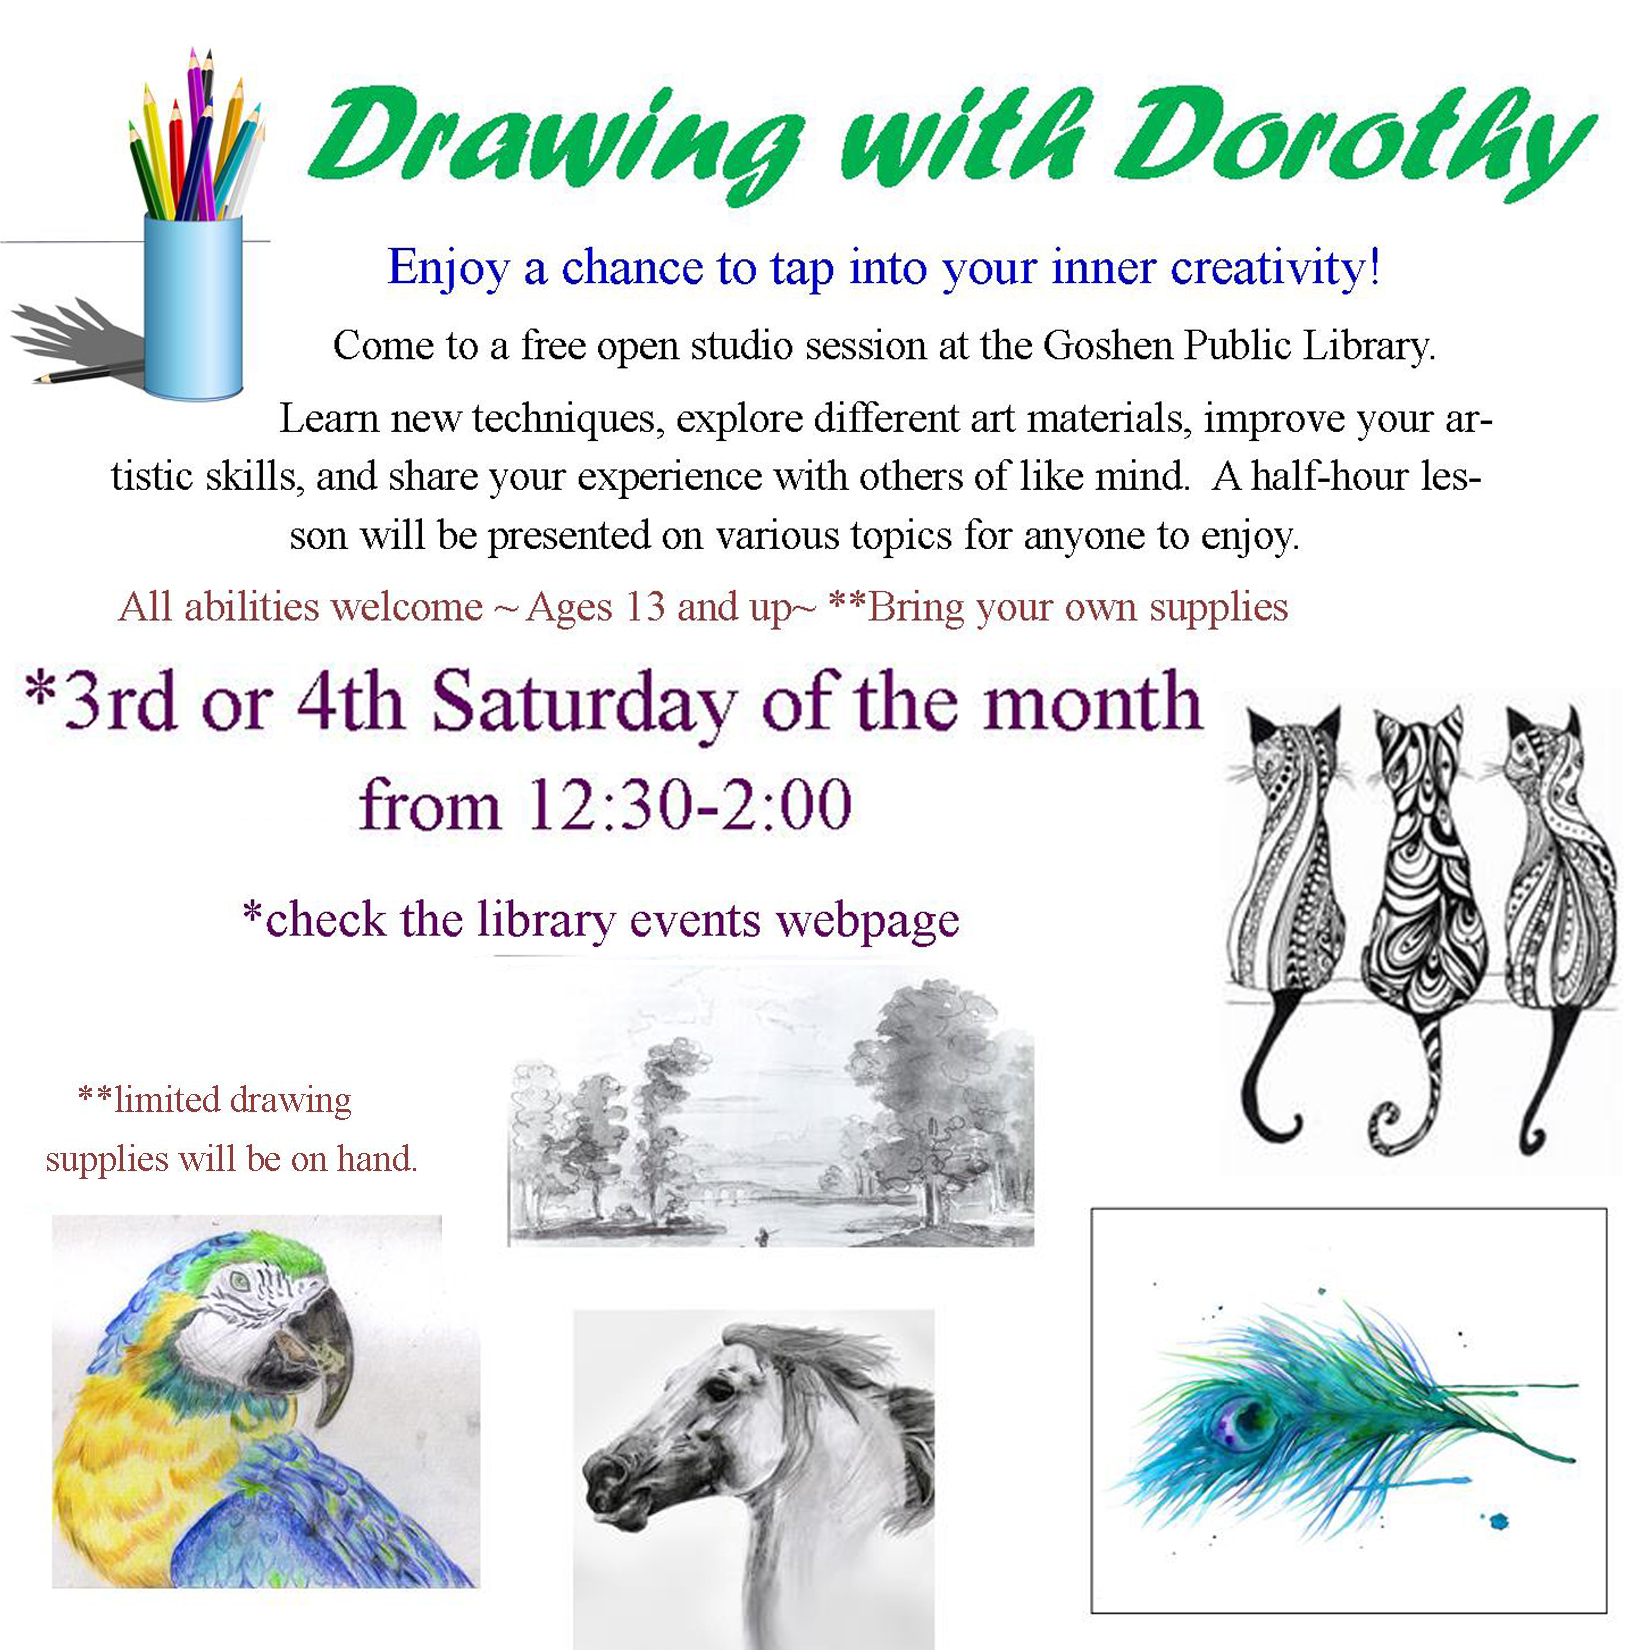 Drawing with Dorothy flyer 2_inSTA